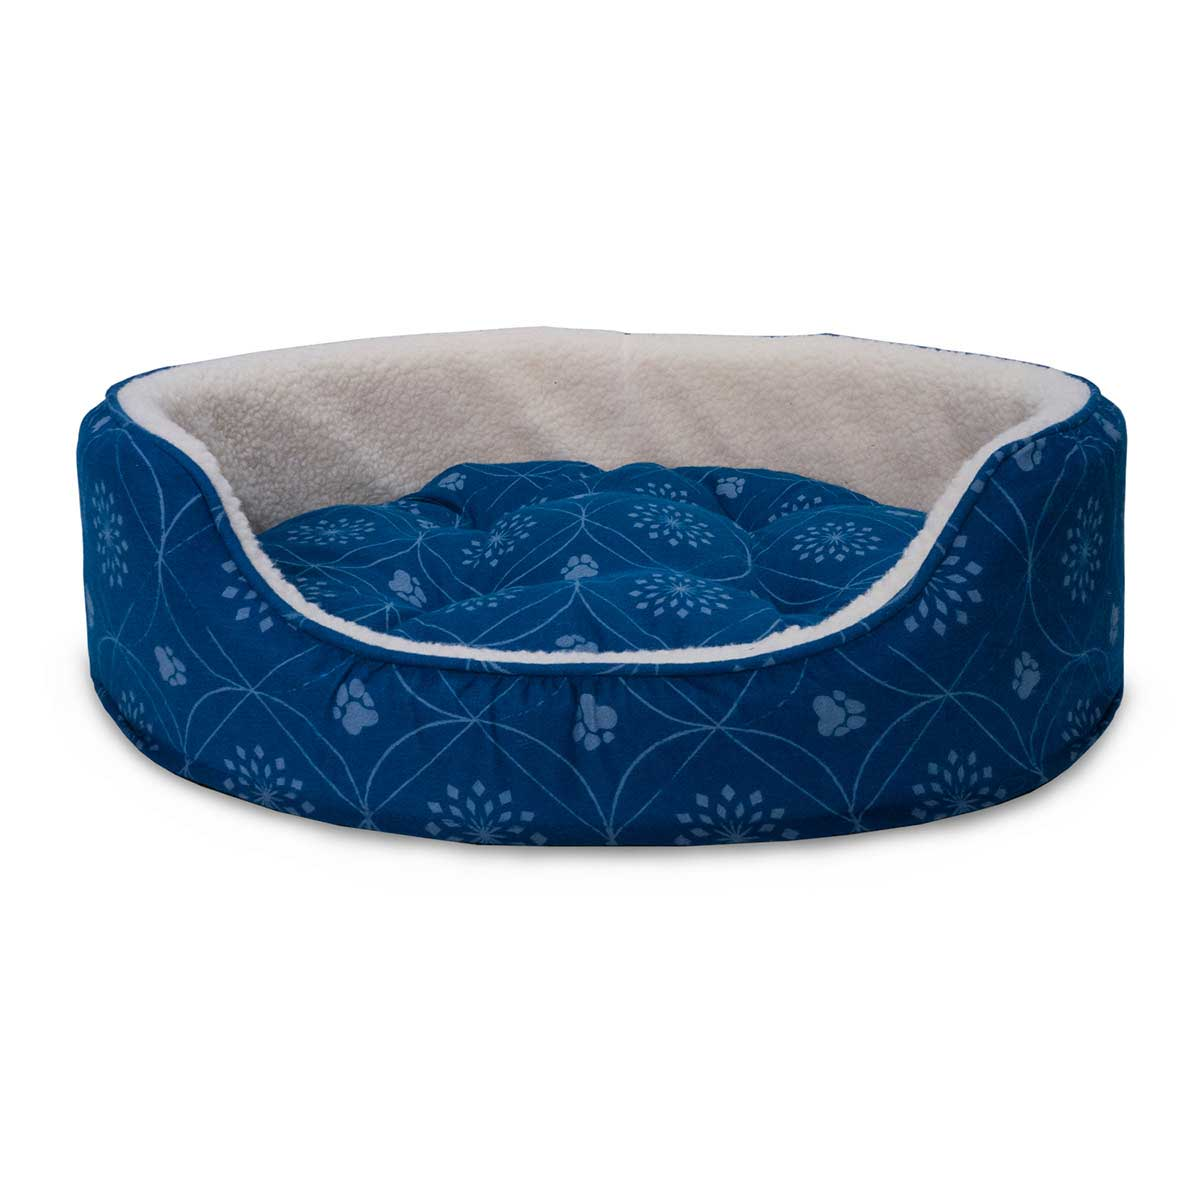 FurHaven Nap Paw Print Decor Flannel Oval Pet Bed - Twilight Blue - 15 inches by 18.5 inches